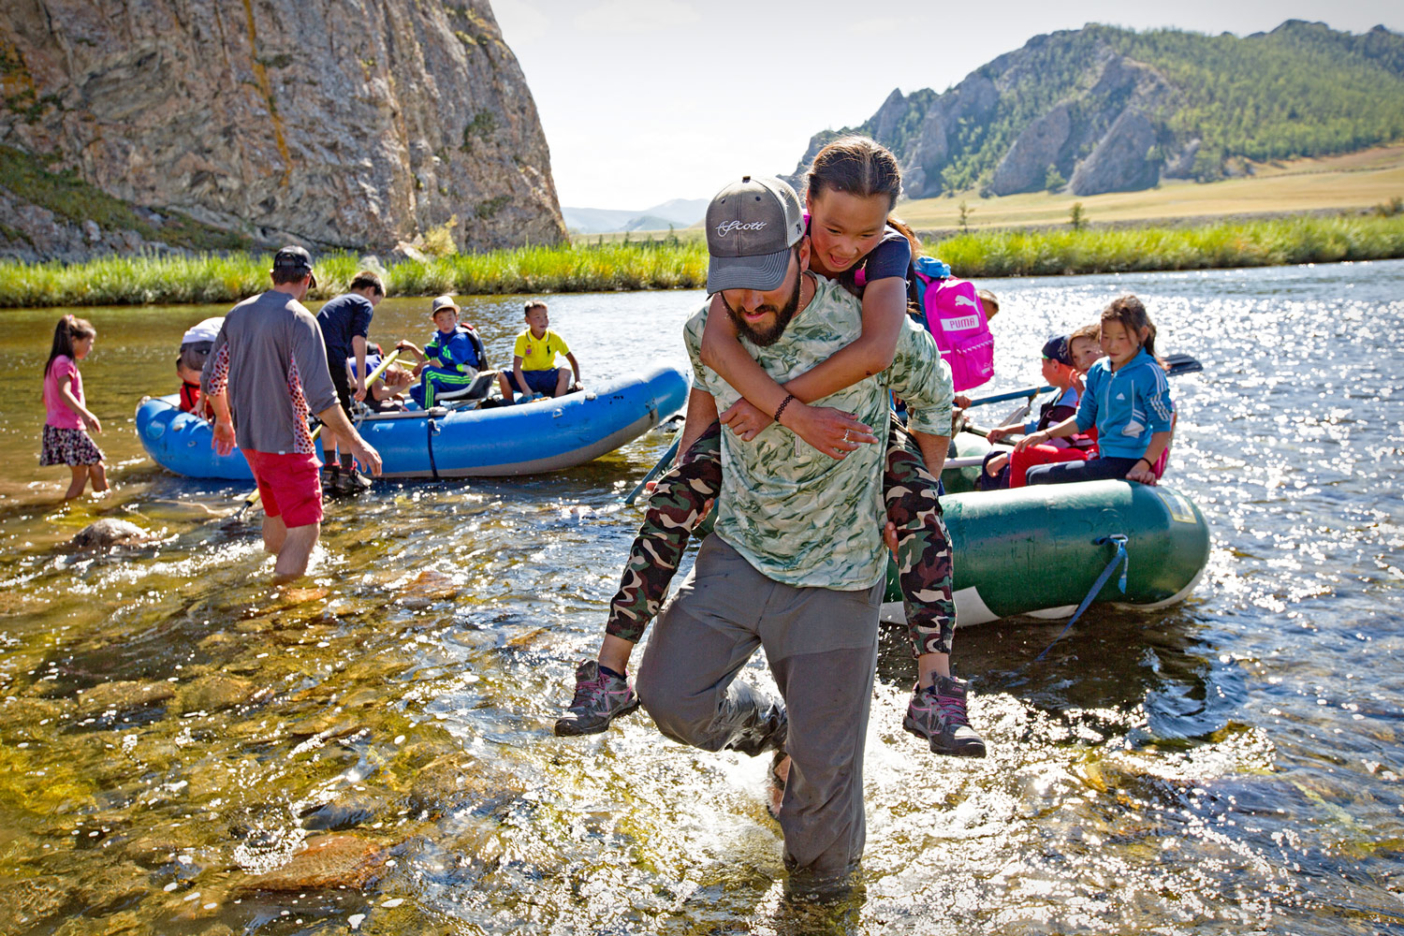 Jeff Forsee, head guide of Fish Mongolia, helps a young local girl to shore for a fly fishing lesson. Photo: Earl Harper